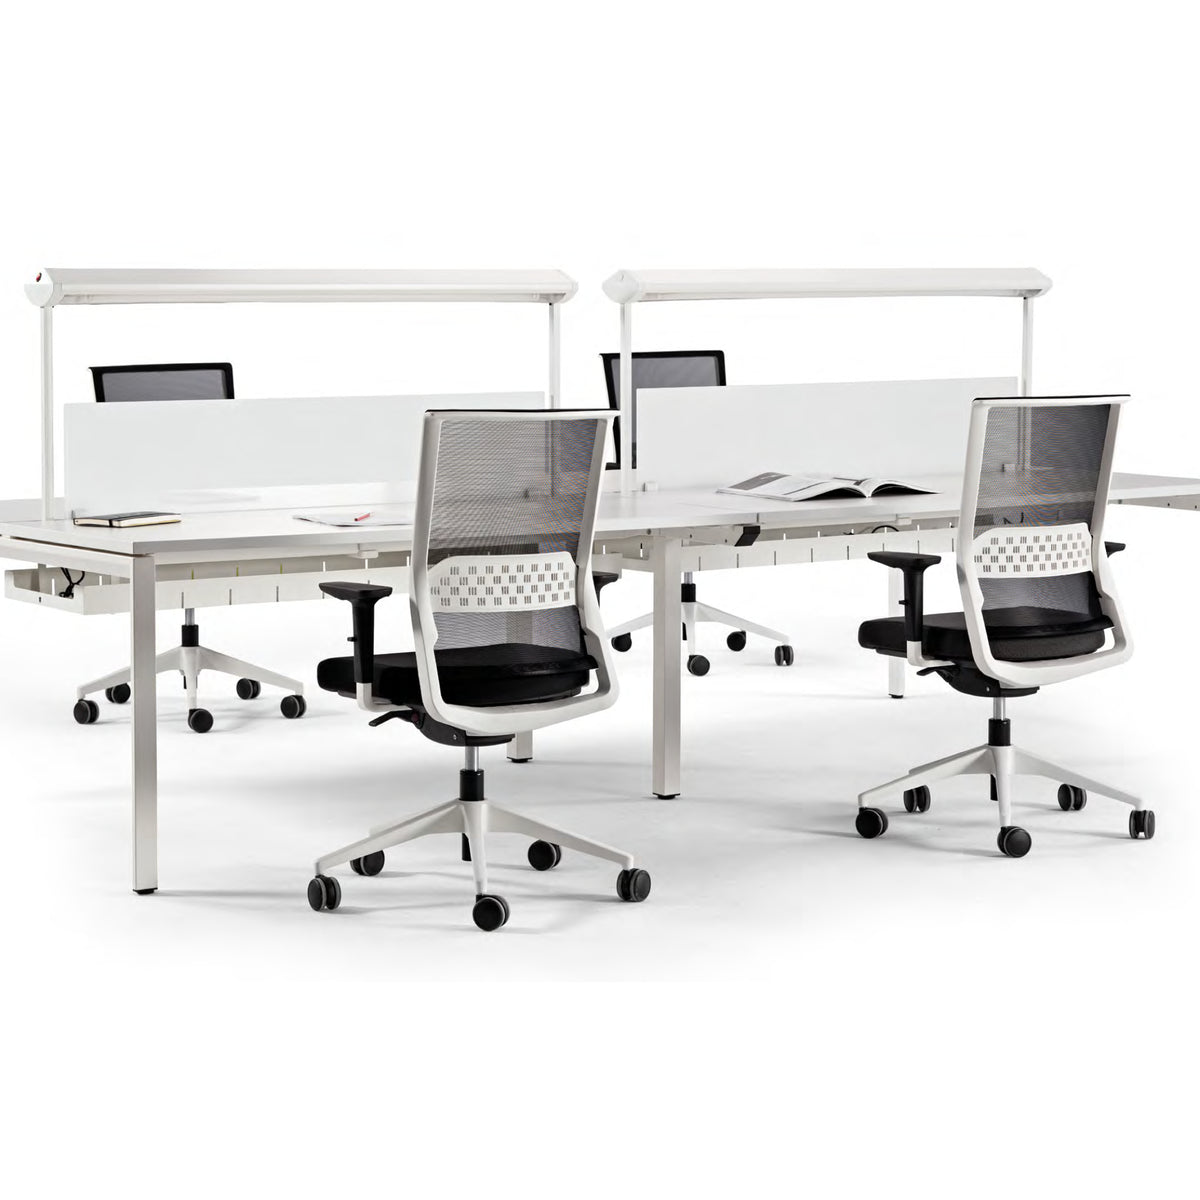 Actiu Office Stay Task Chair - Mesh Back